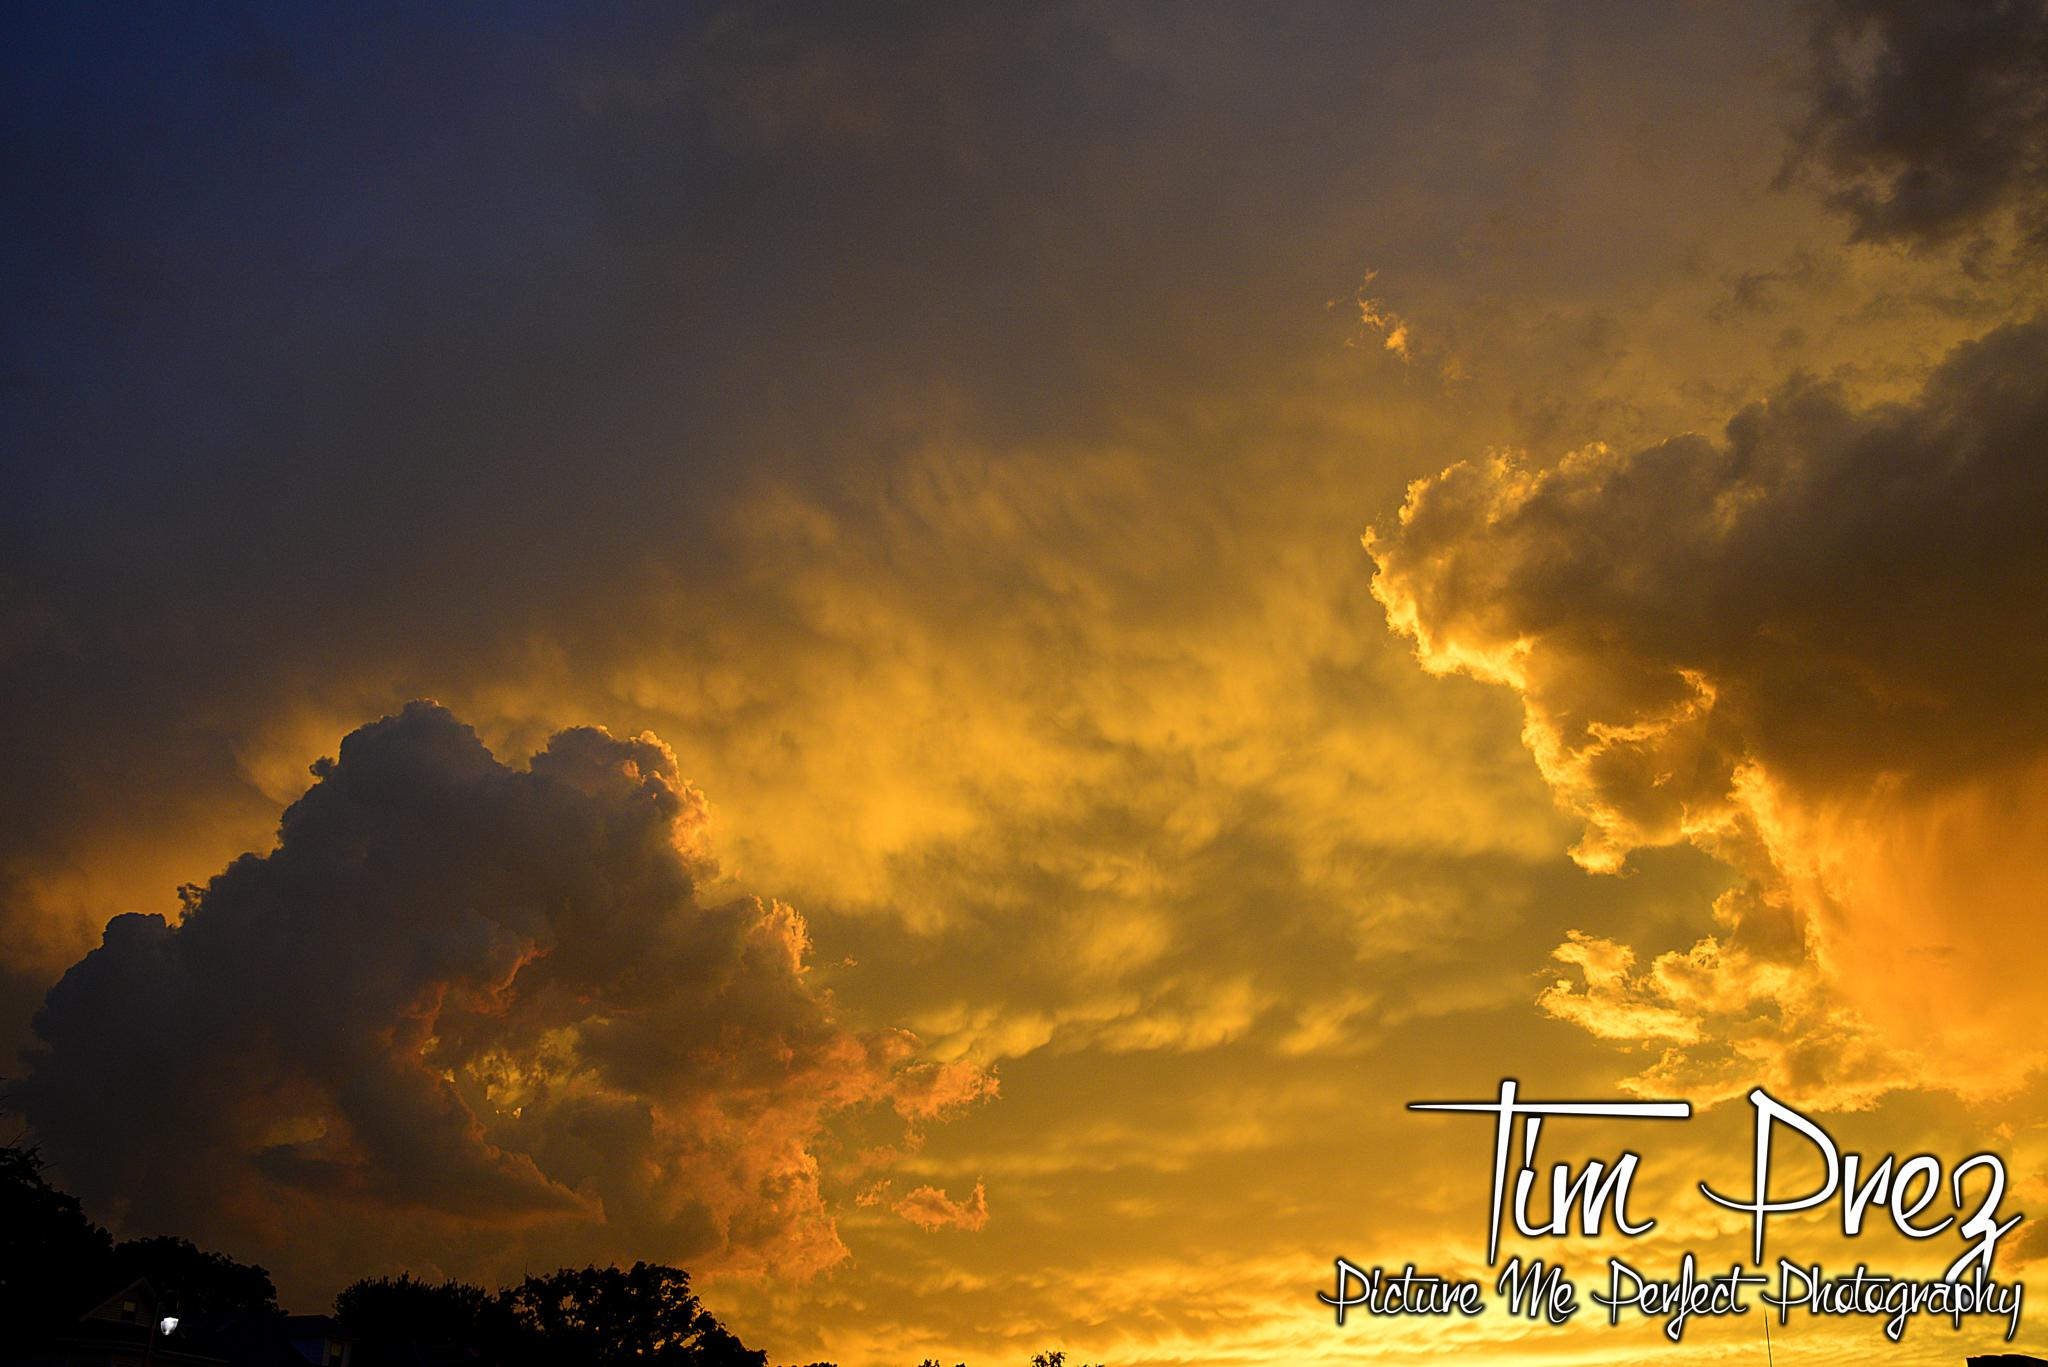 Awesome Sunset tonight by picturemeperfectphotography